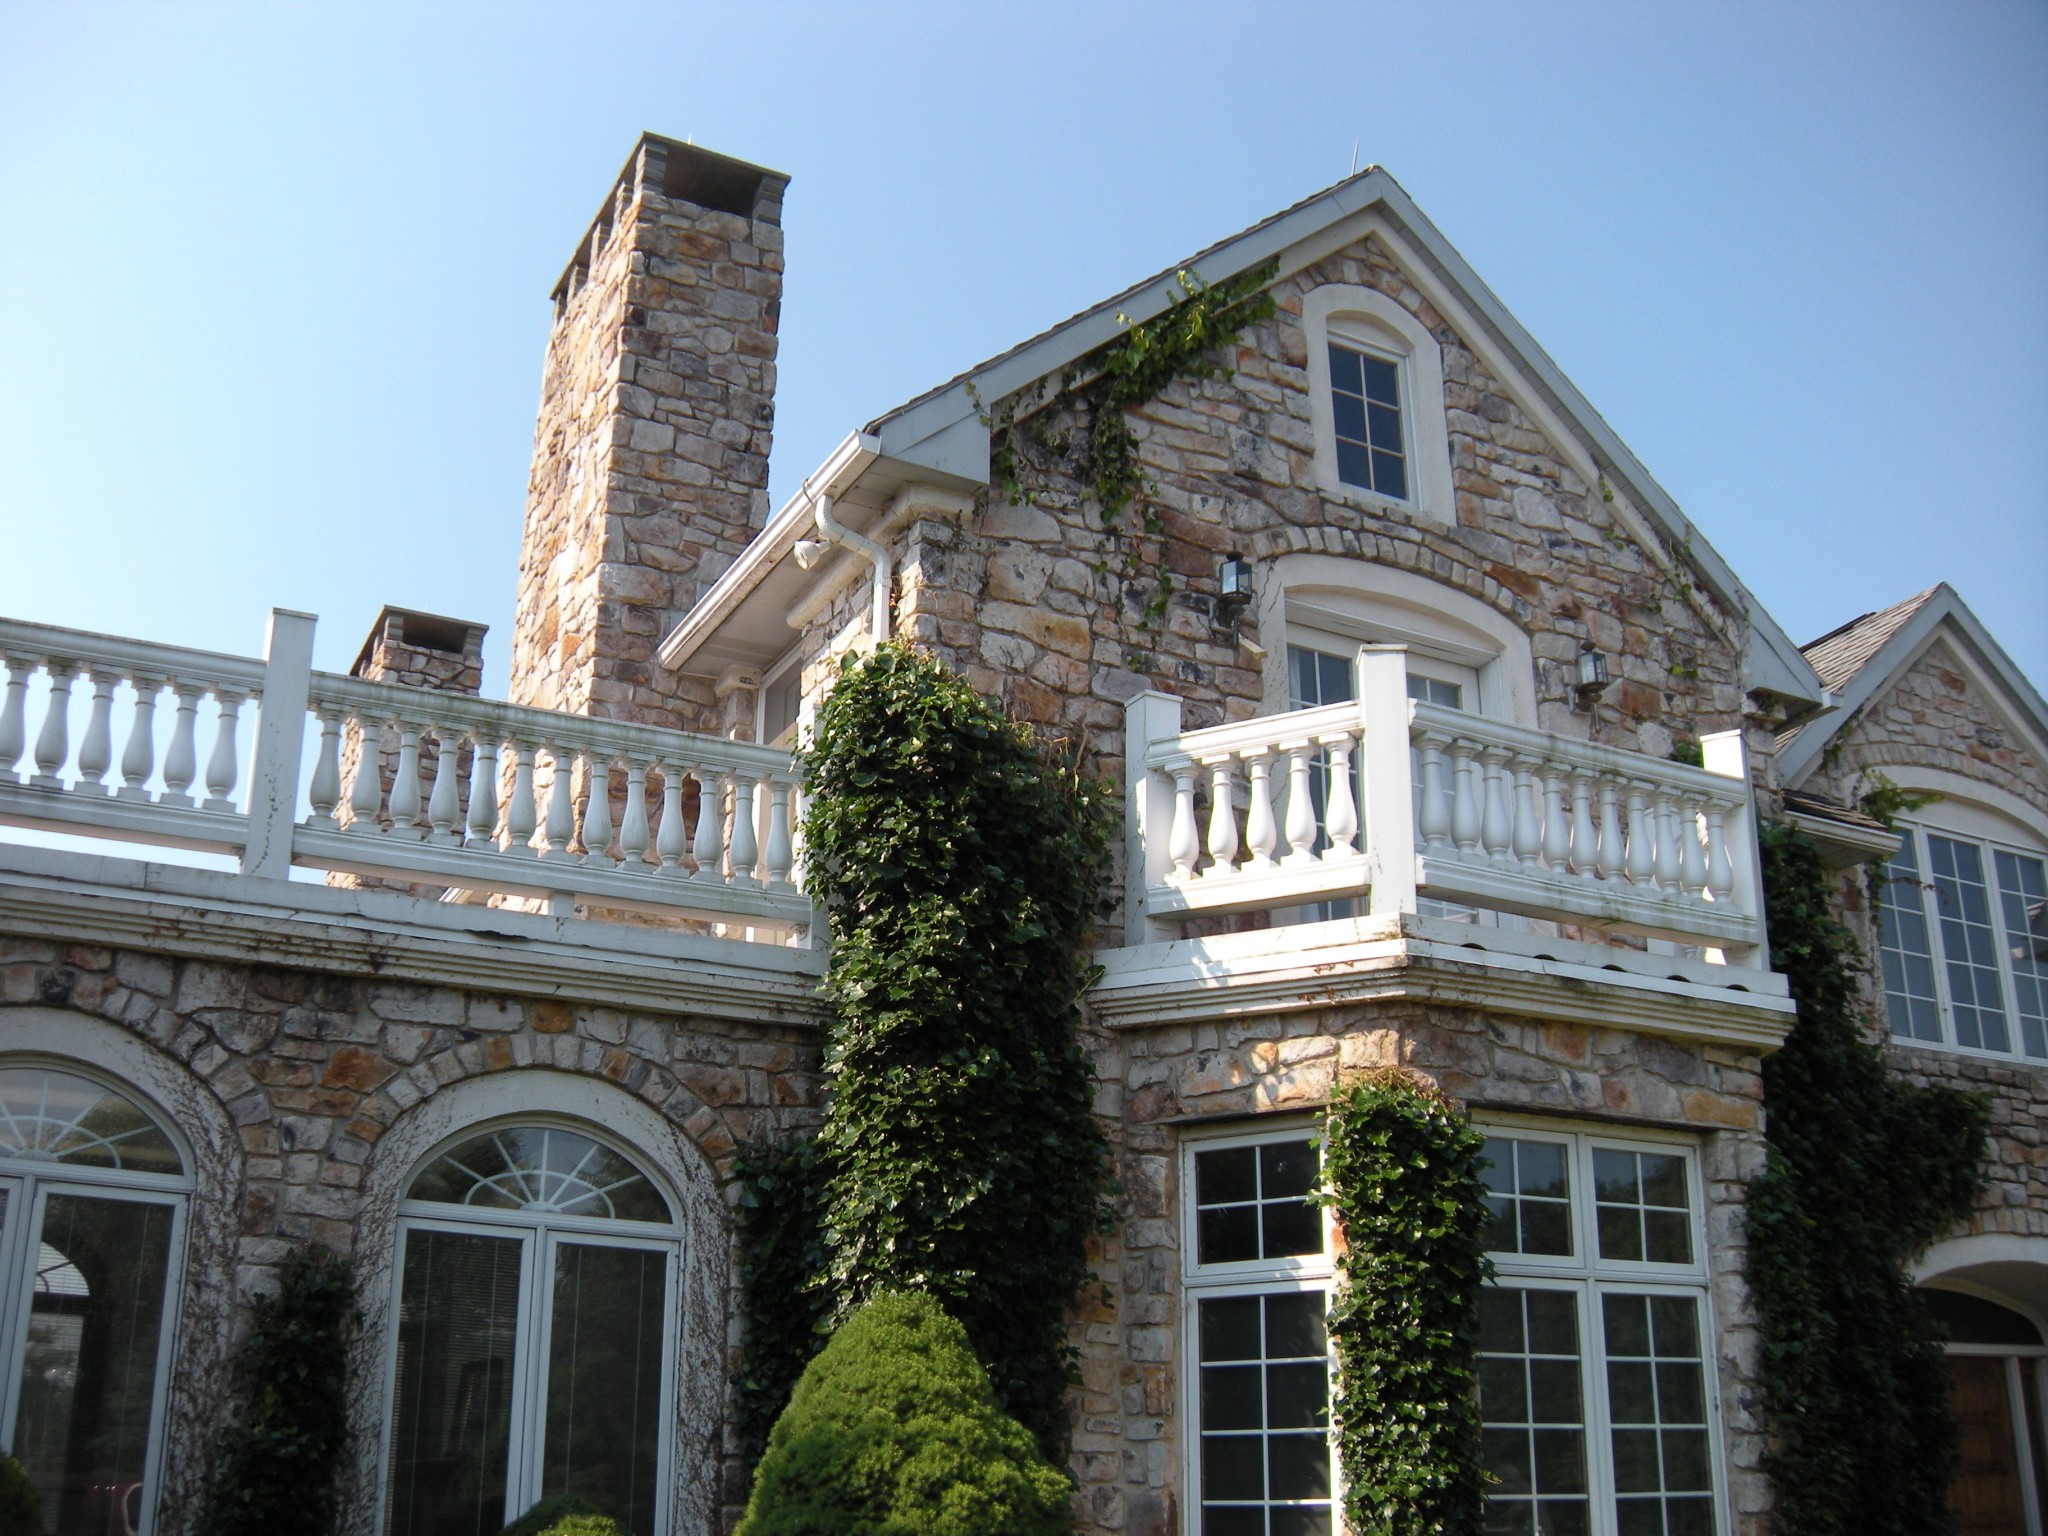 An example of a stone house built in Central Pennsylvania by Pyle Bros. Building Stone Contractors